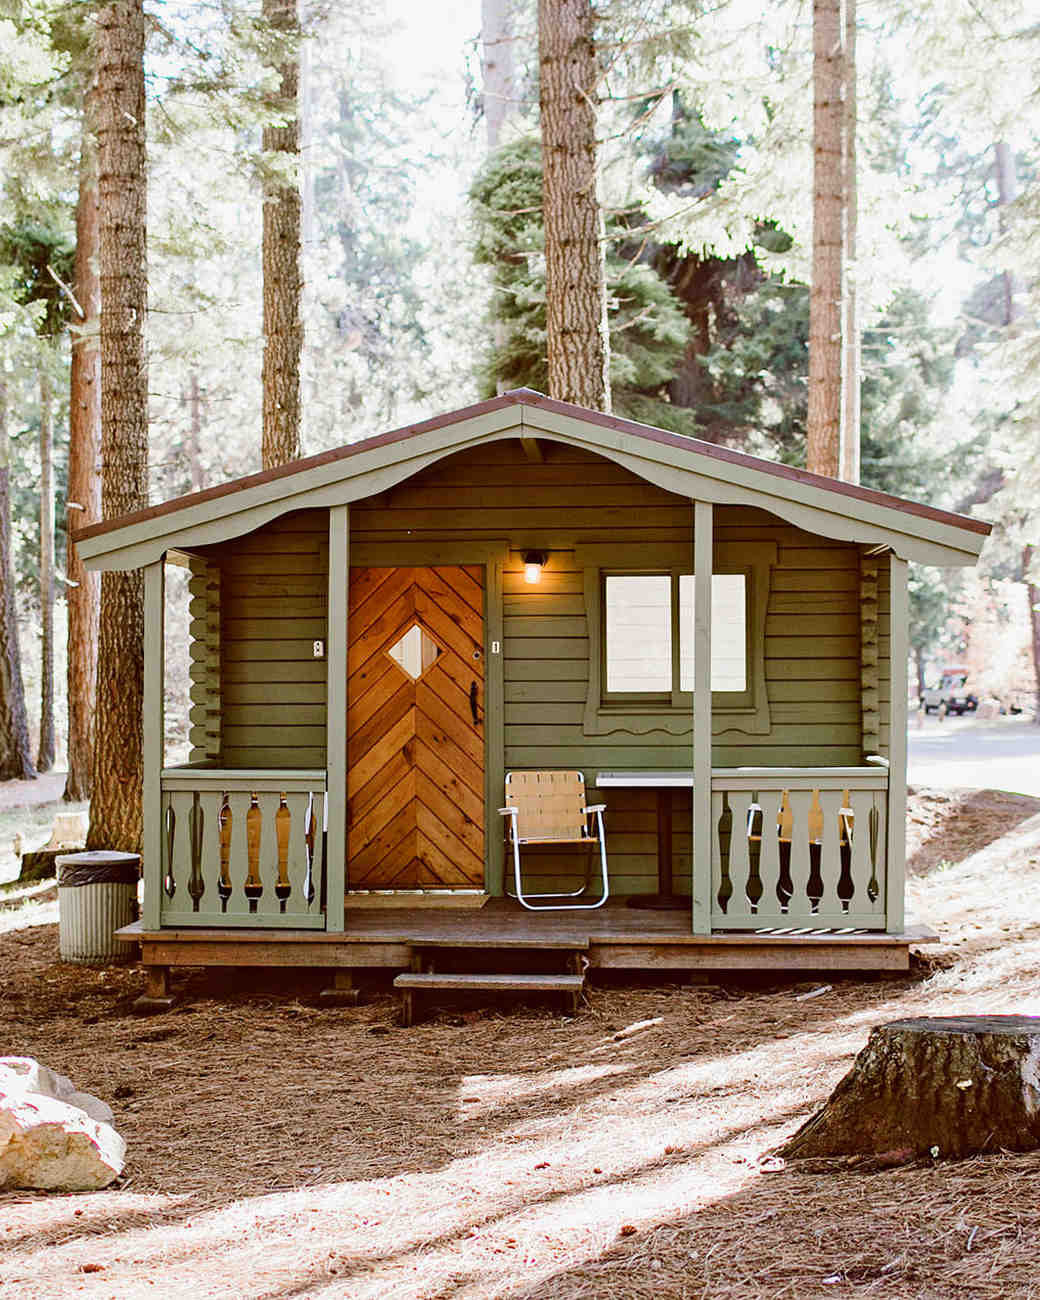 Wedding Rentals Portland Or: 18 Summer Camp Wedding Venues For Kicking Back And Getting